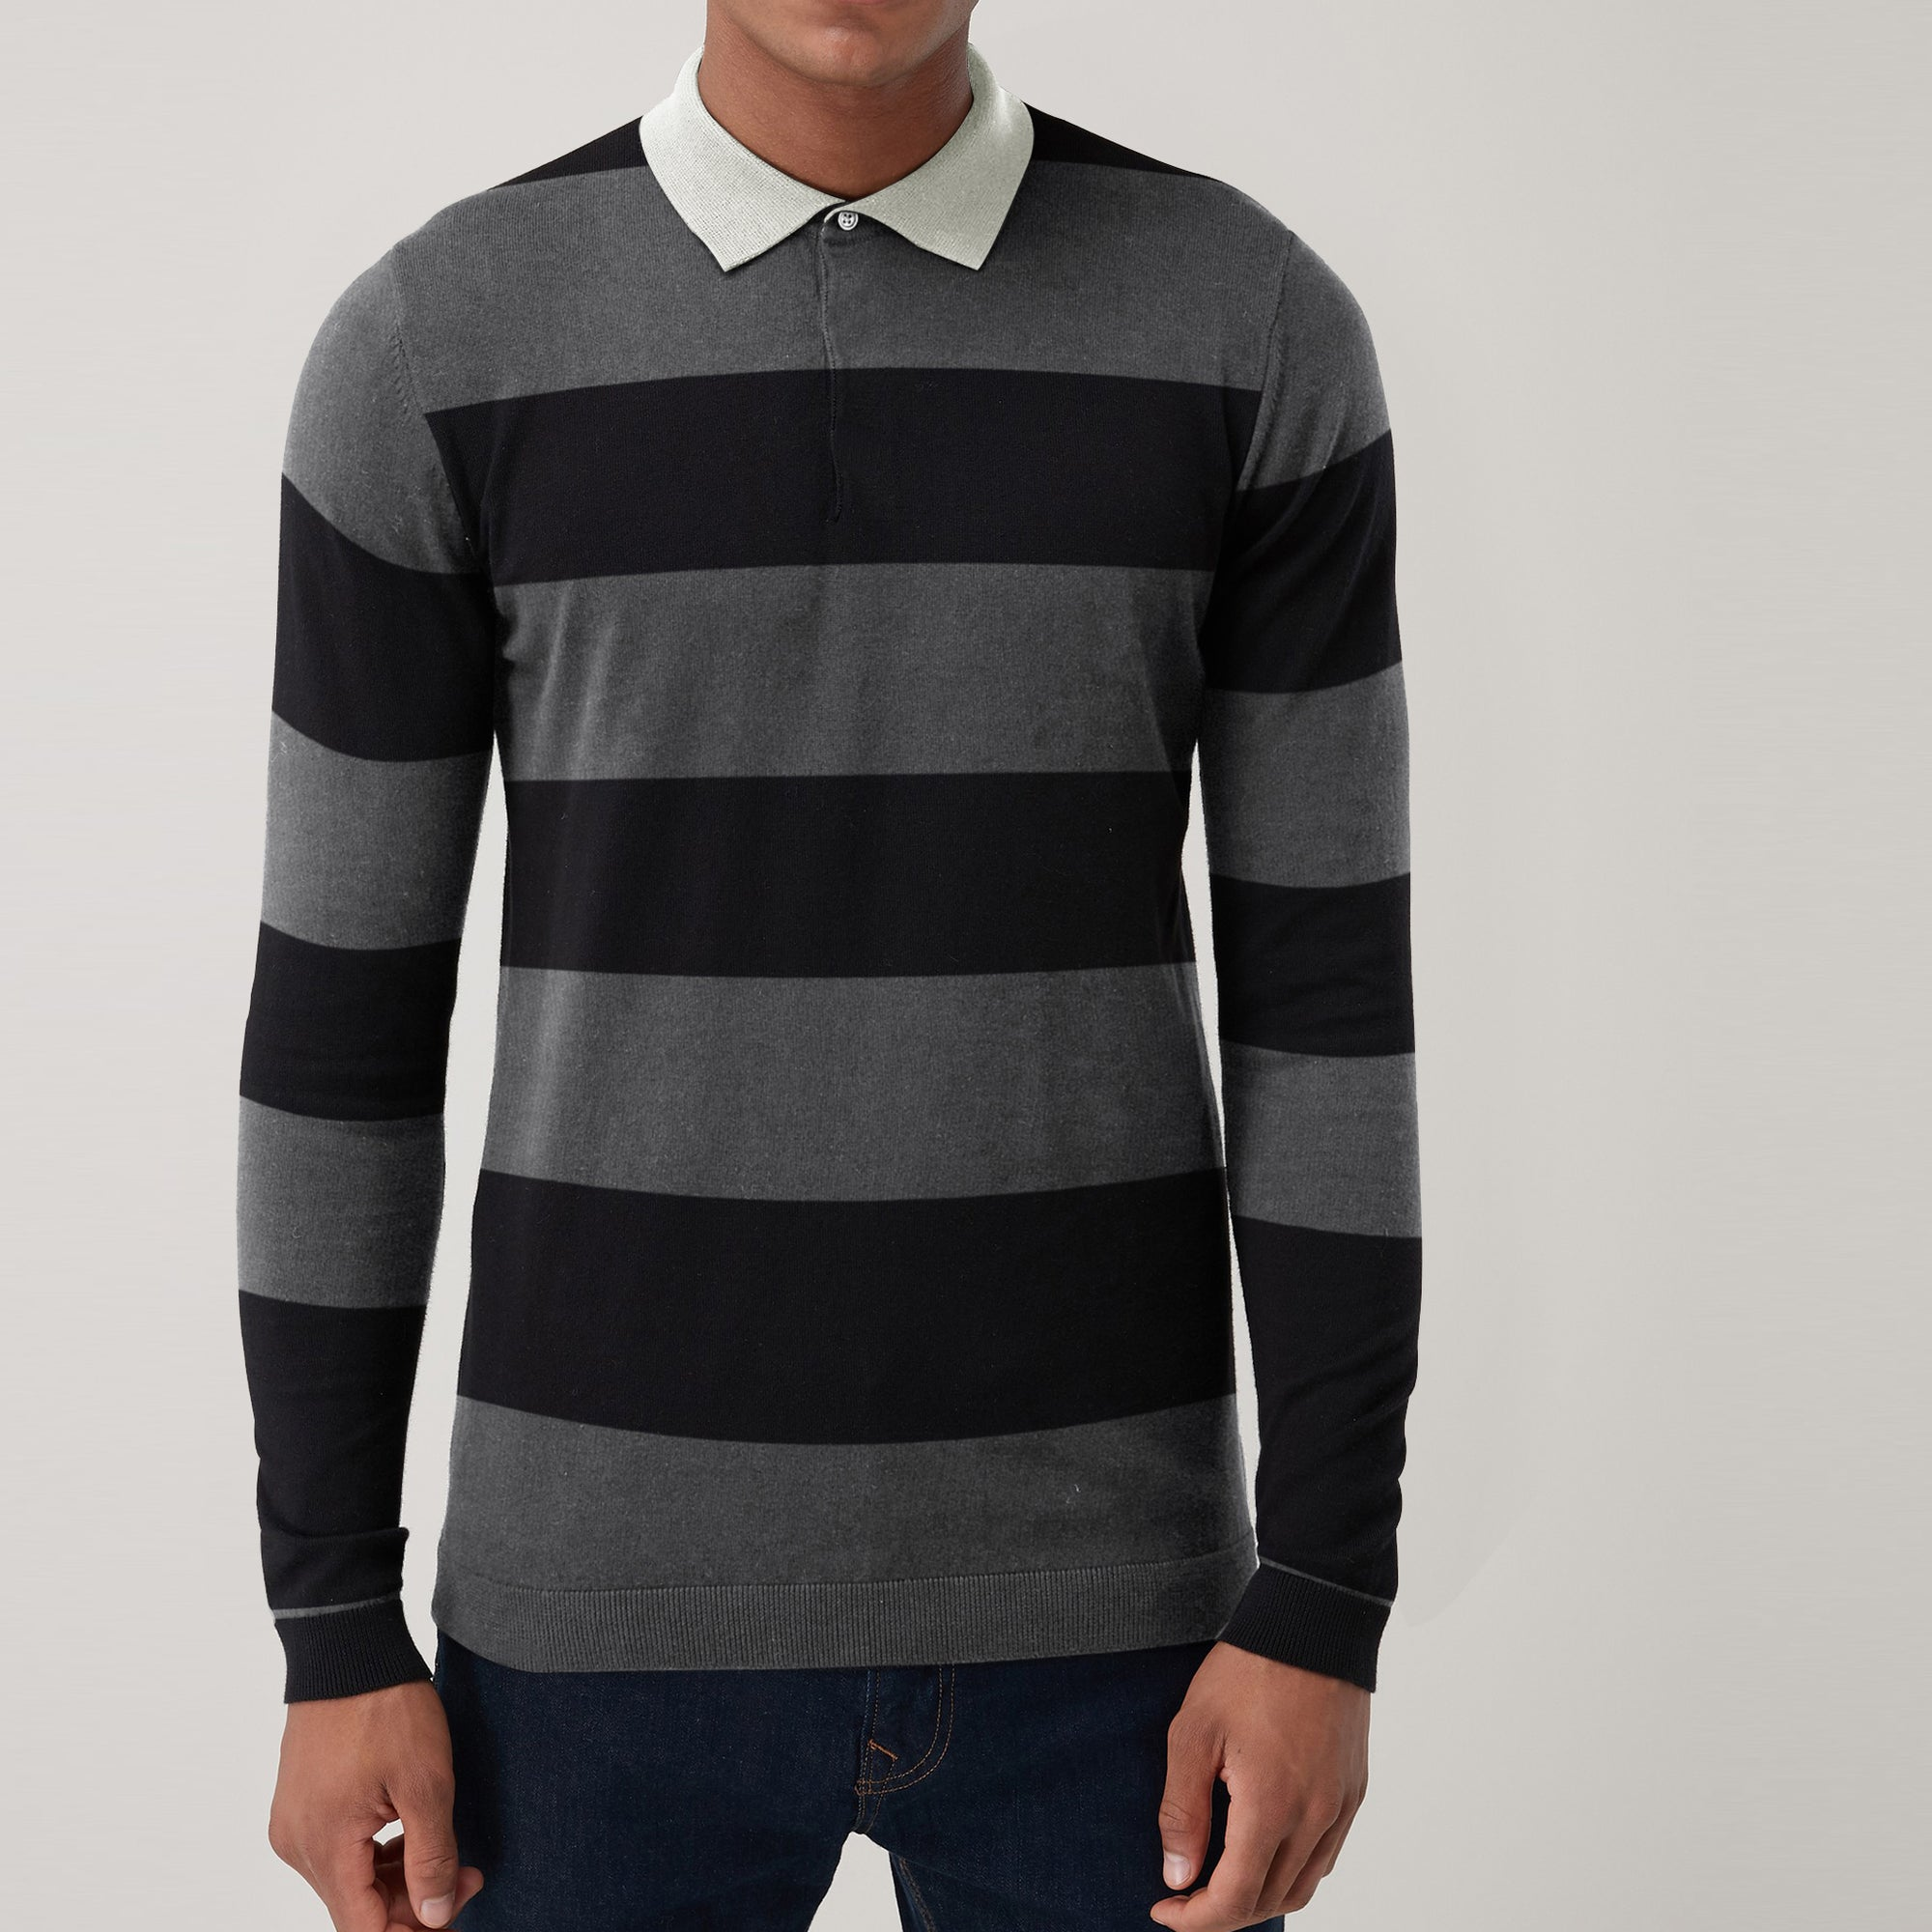 The Modern Single Jersey Long  Sleeve Polo Shirt For Men-Black & Dark Gray Stripe-SP280